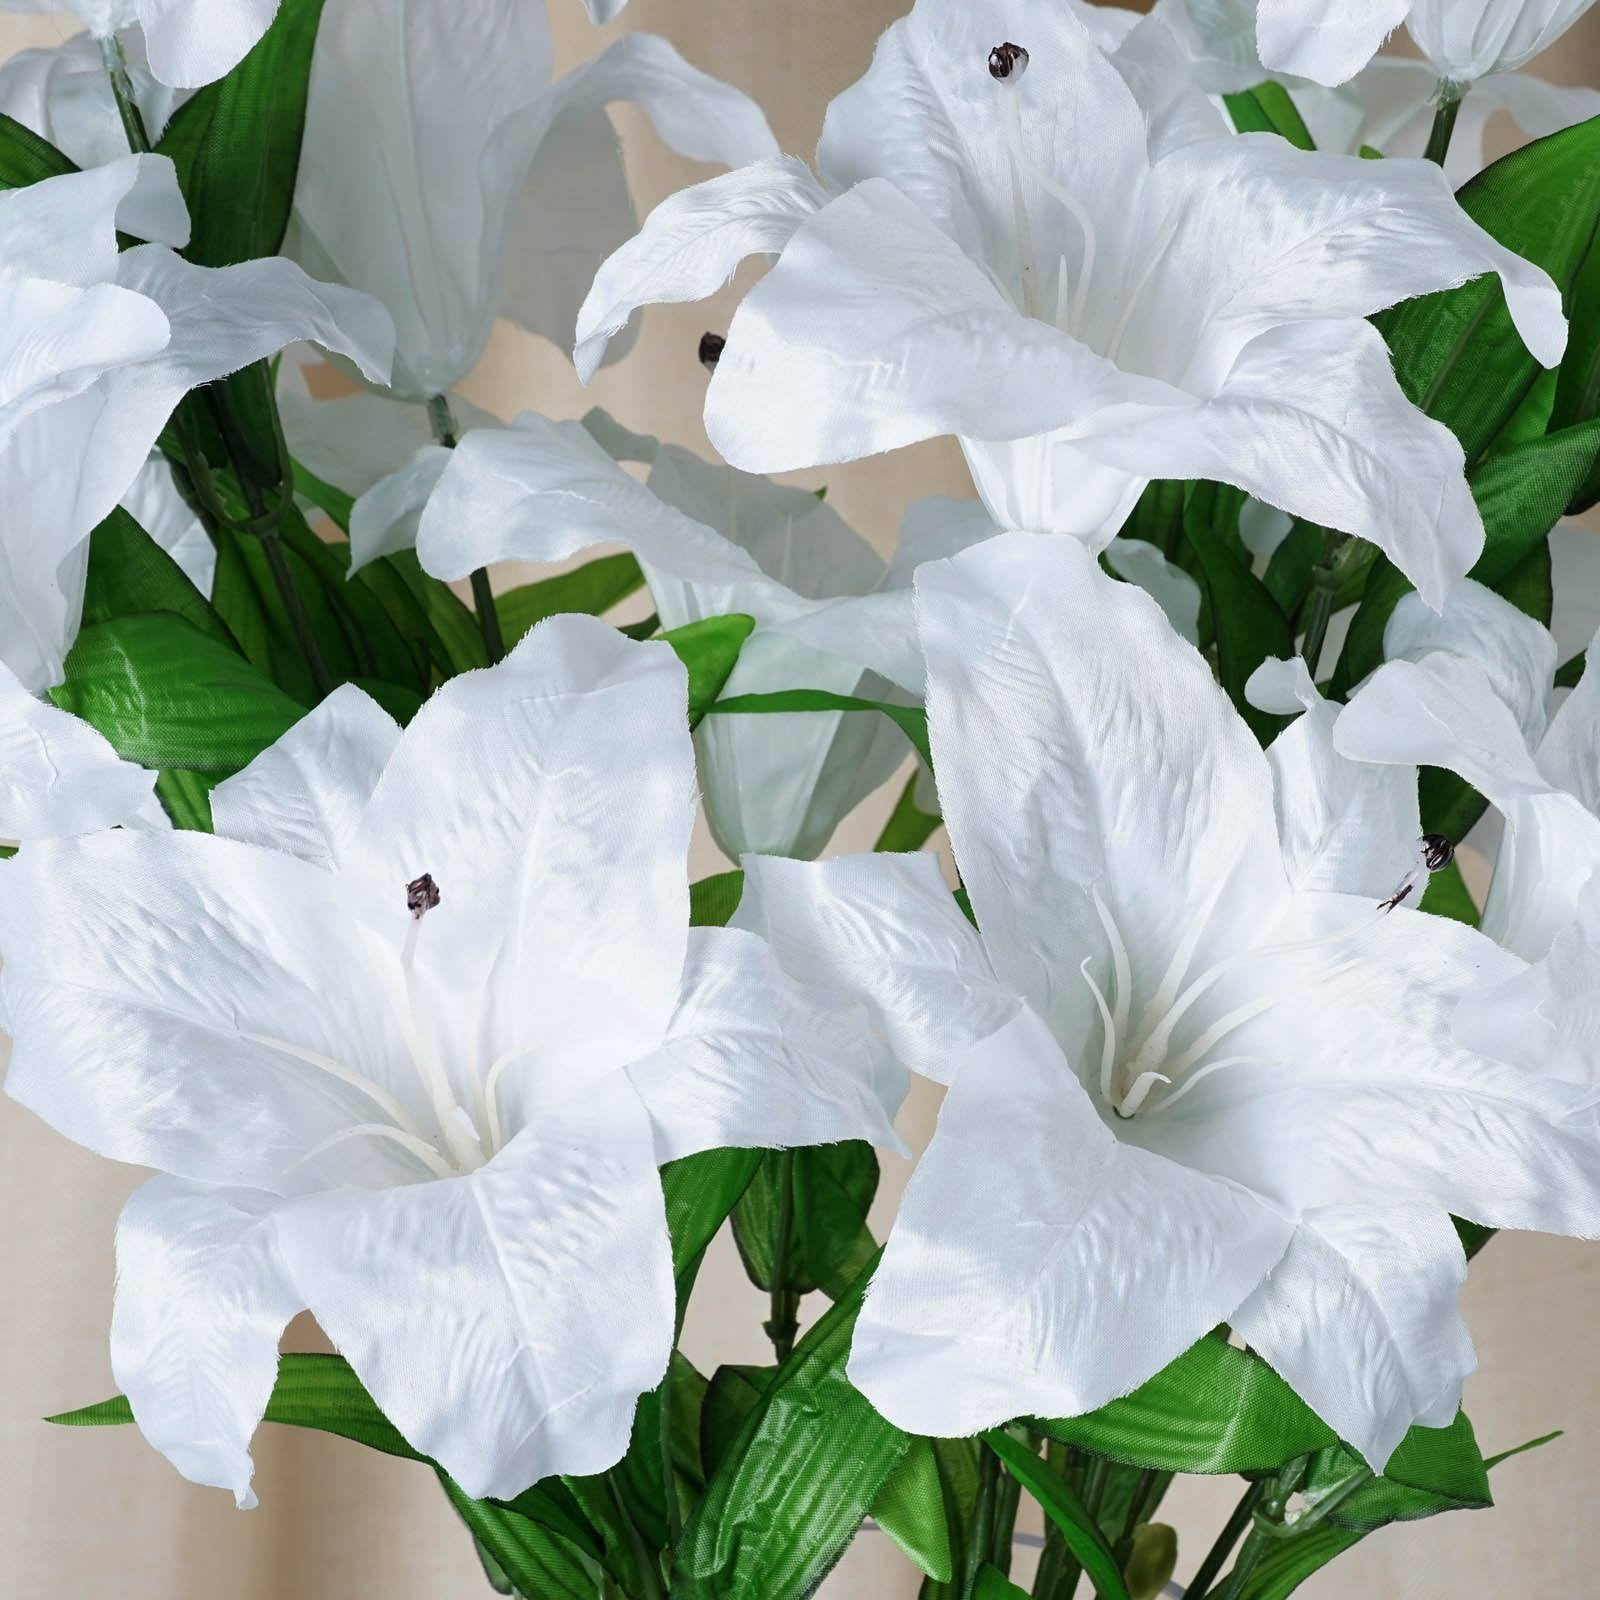 6 Bush 54 Pcs White Artificial Casa Blanca Lily Flower Bridal